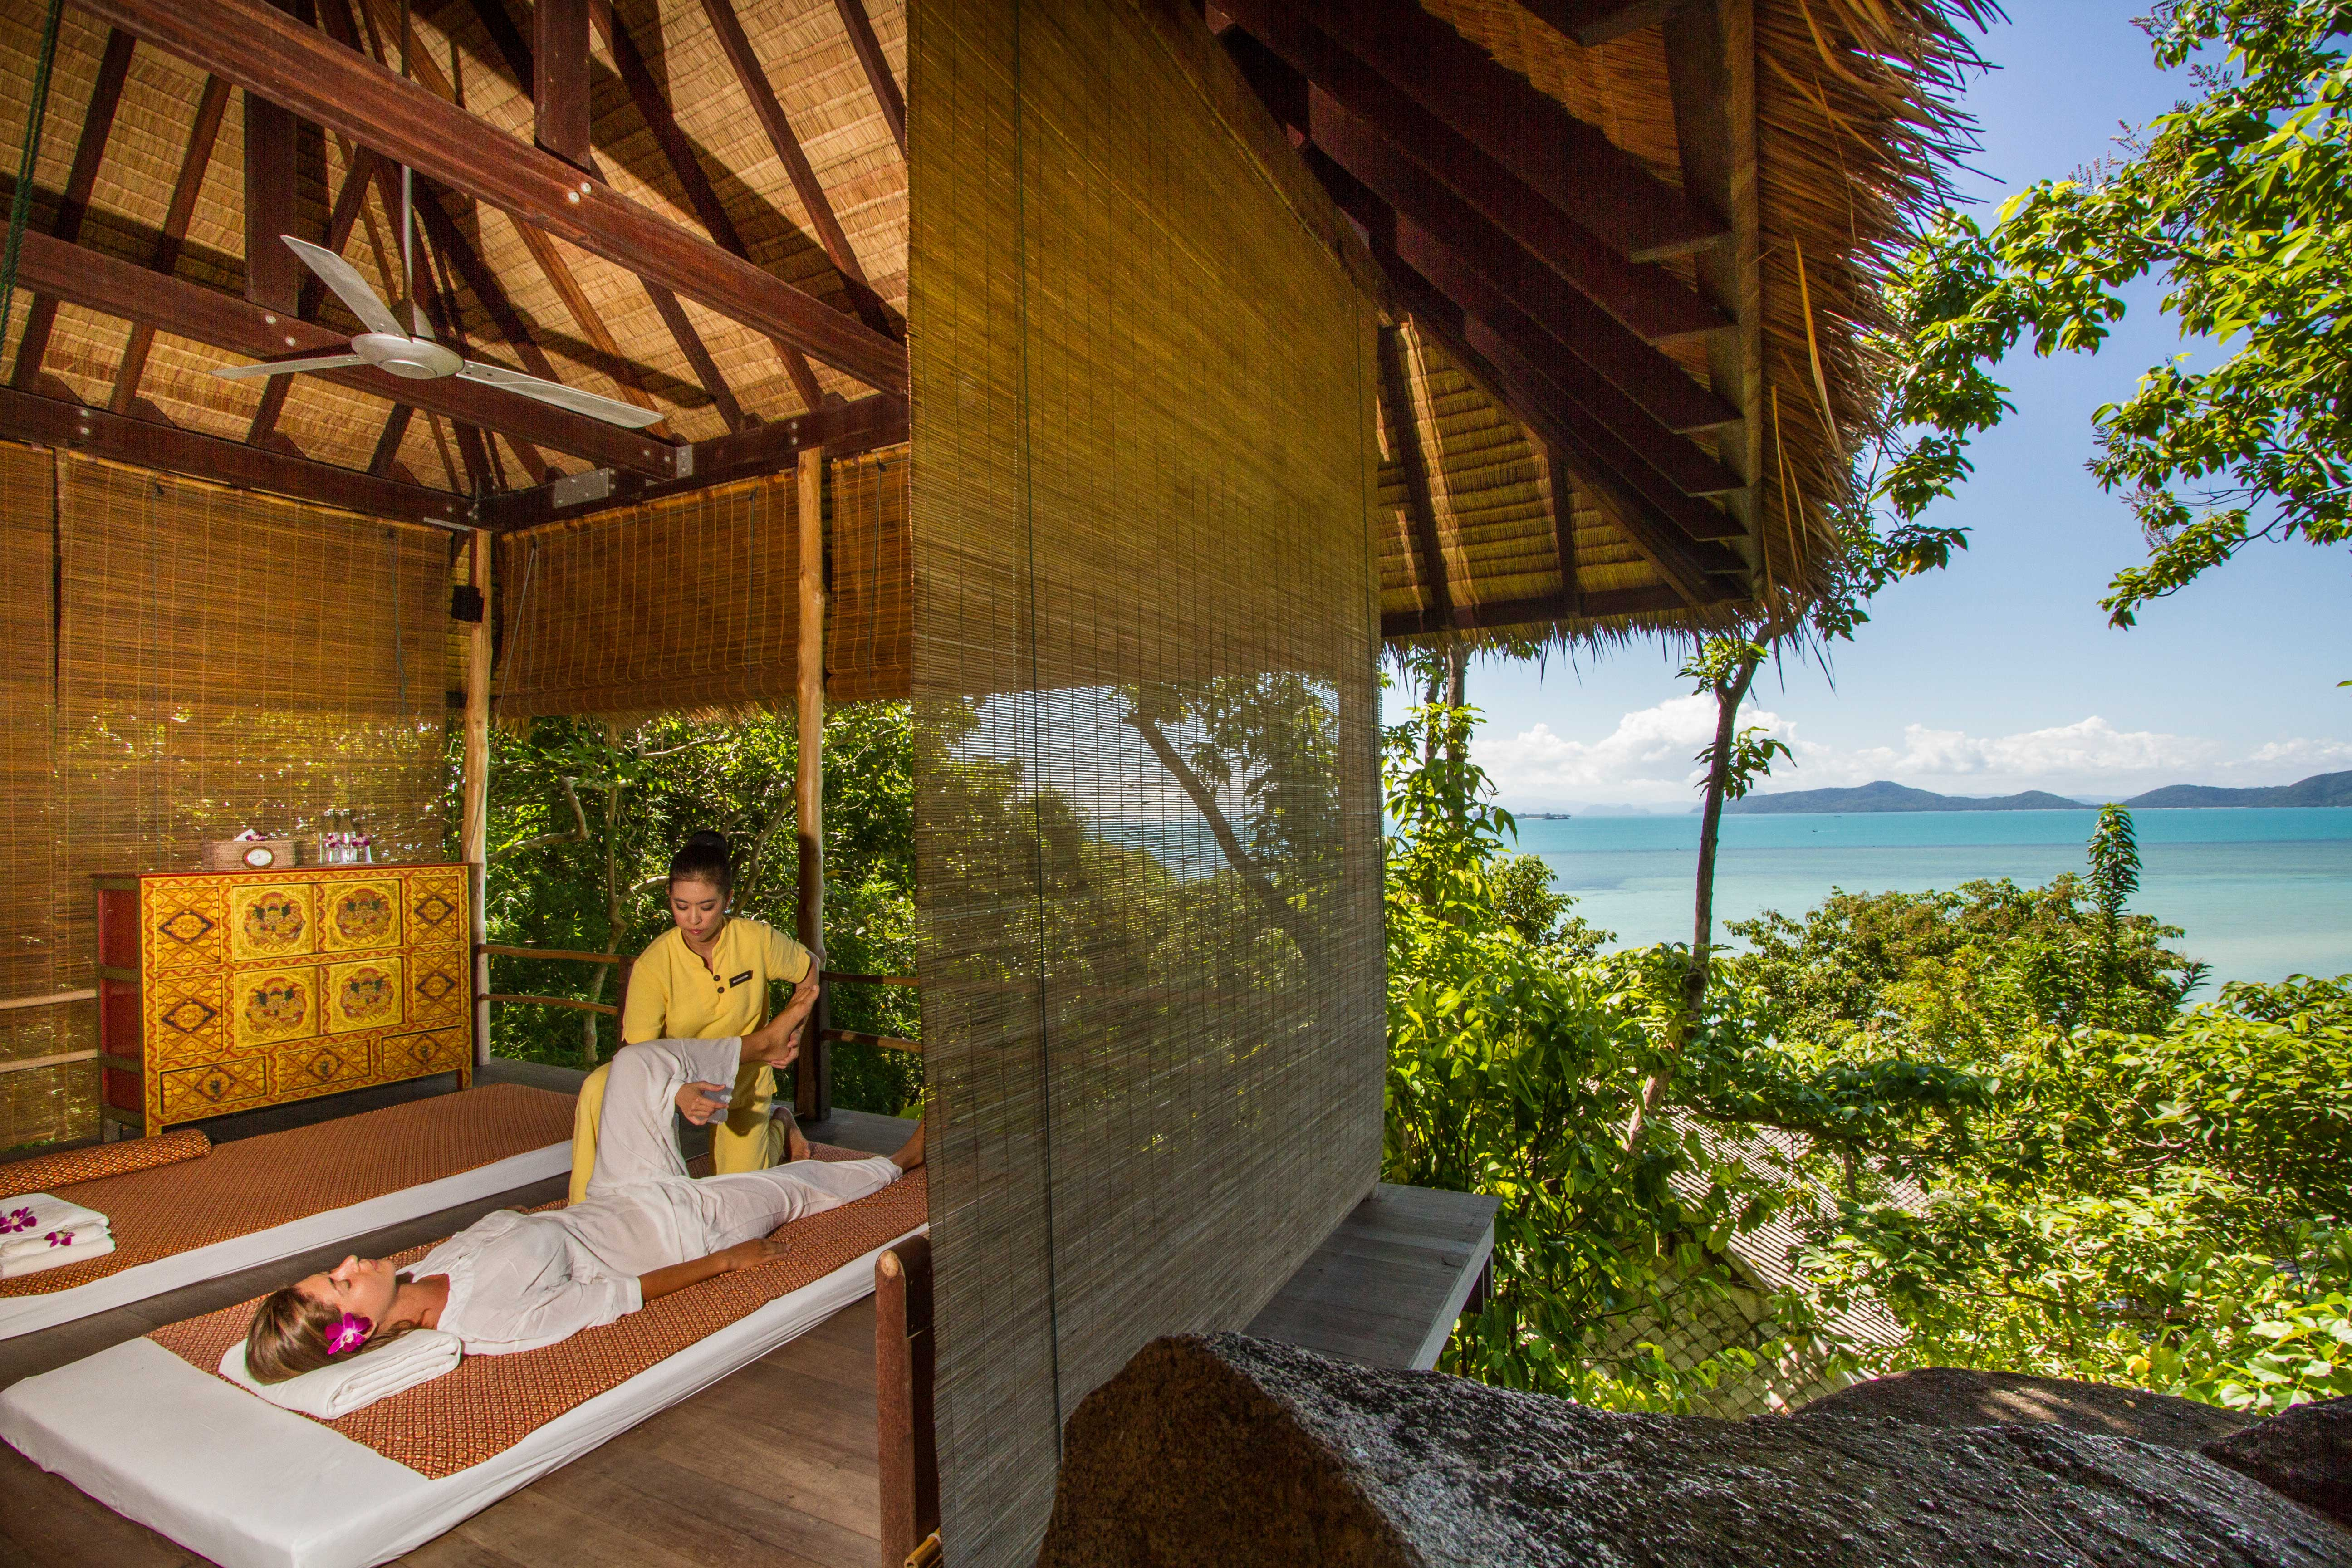 Kamalaya-Koh-Samui-Open-treatment-rooms